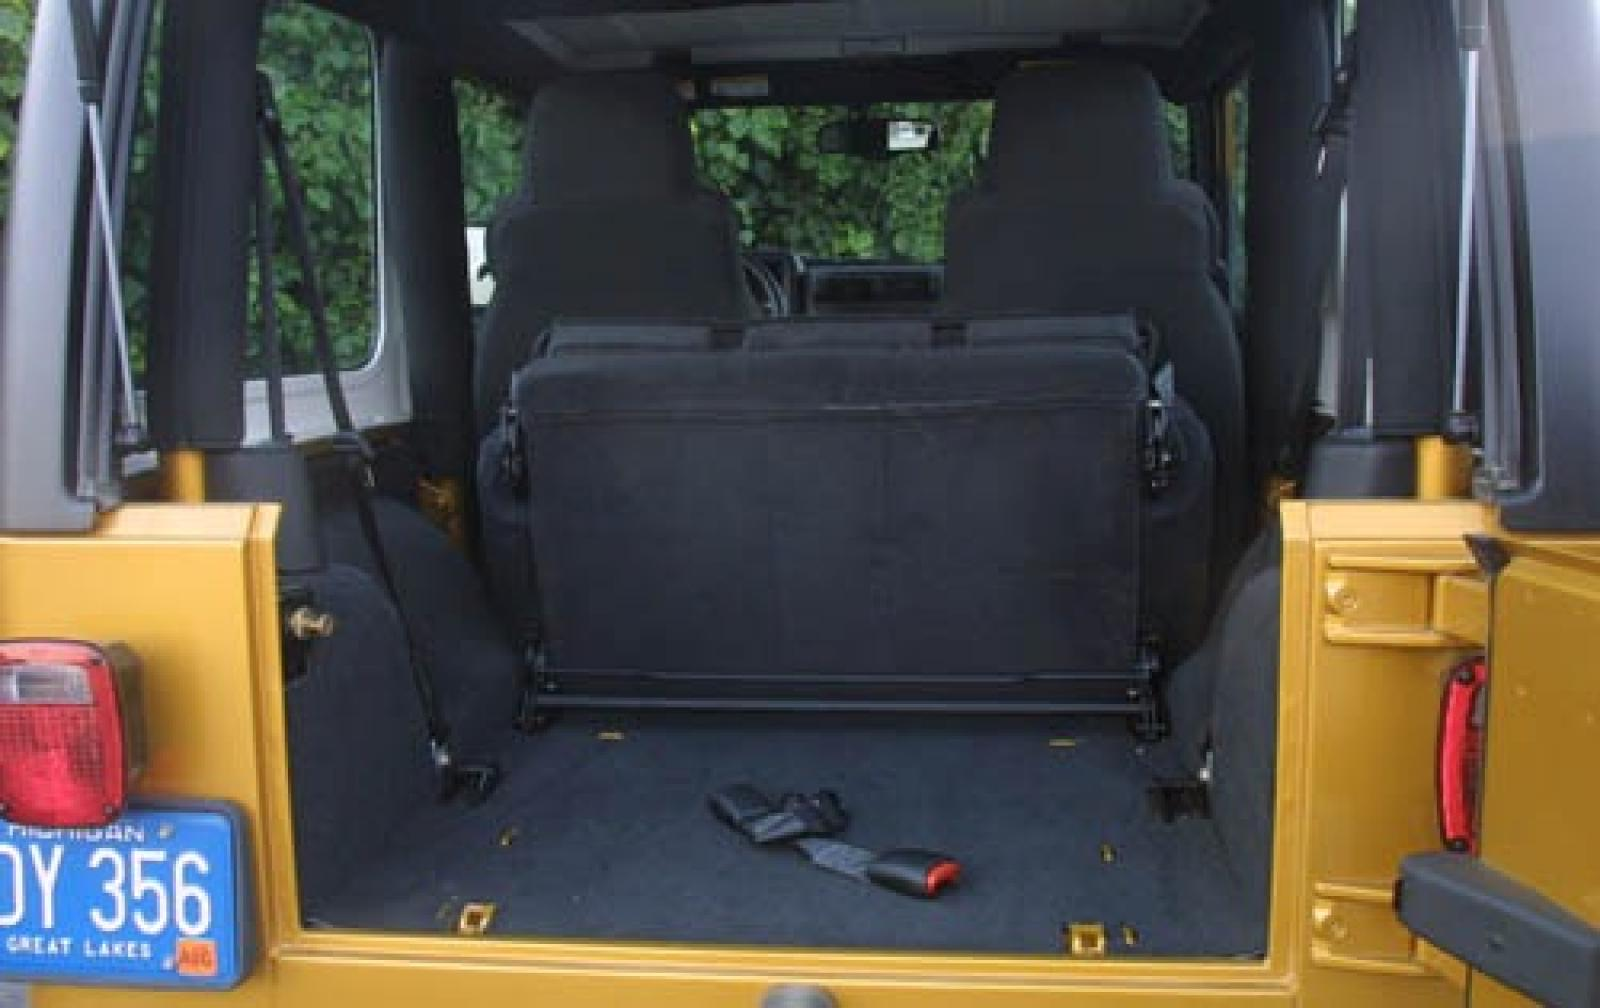 2005 Jeep Wrangler Information And Photos Zombiedrive Unlimited Interior Rubico 8 800 1024 1280 1600 Origin